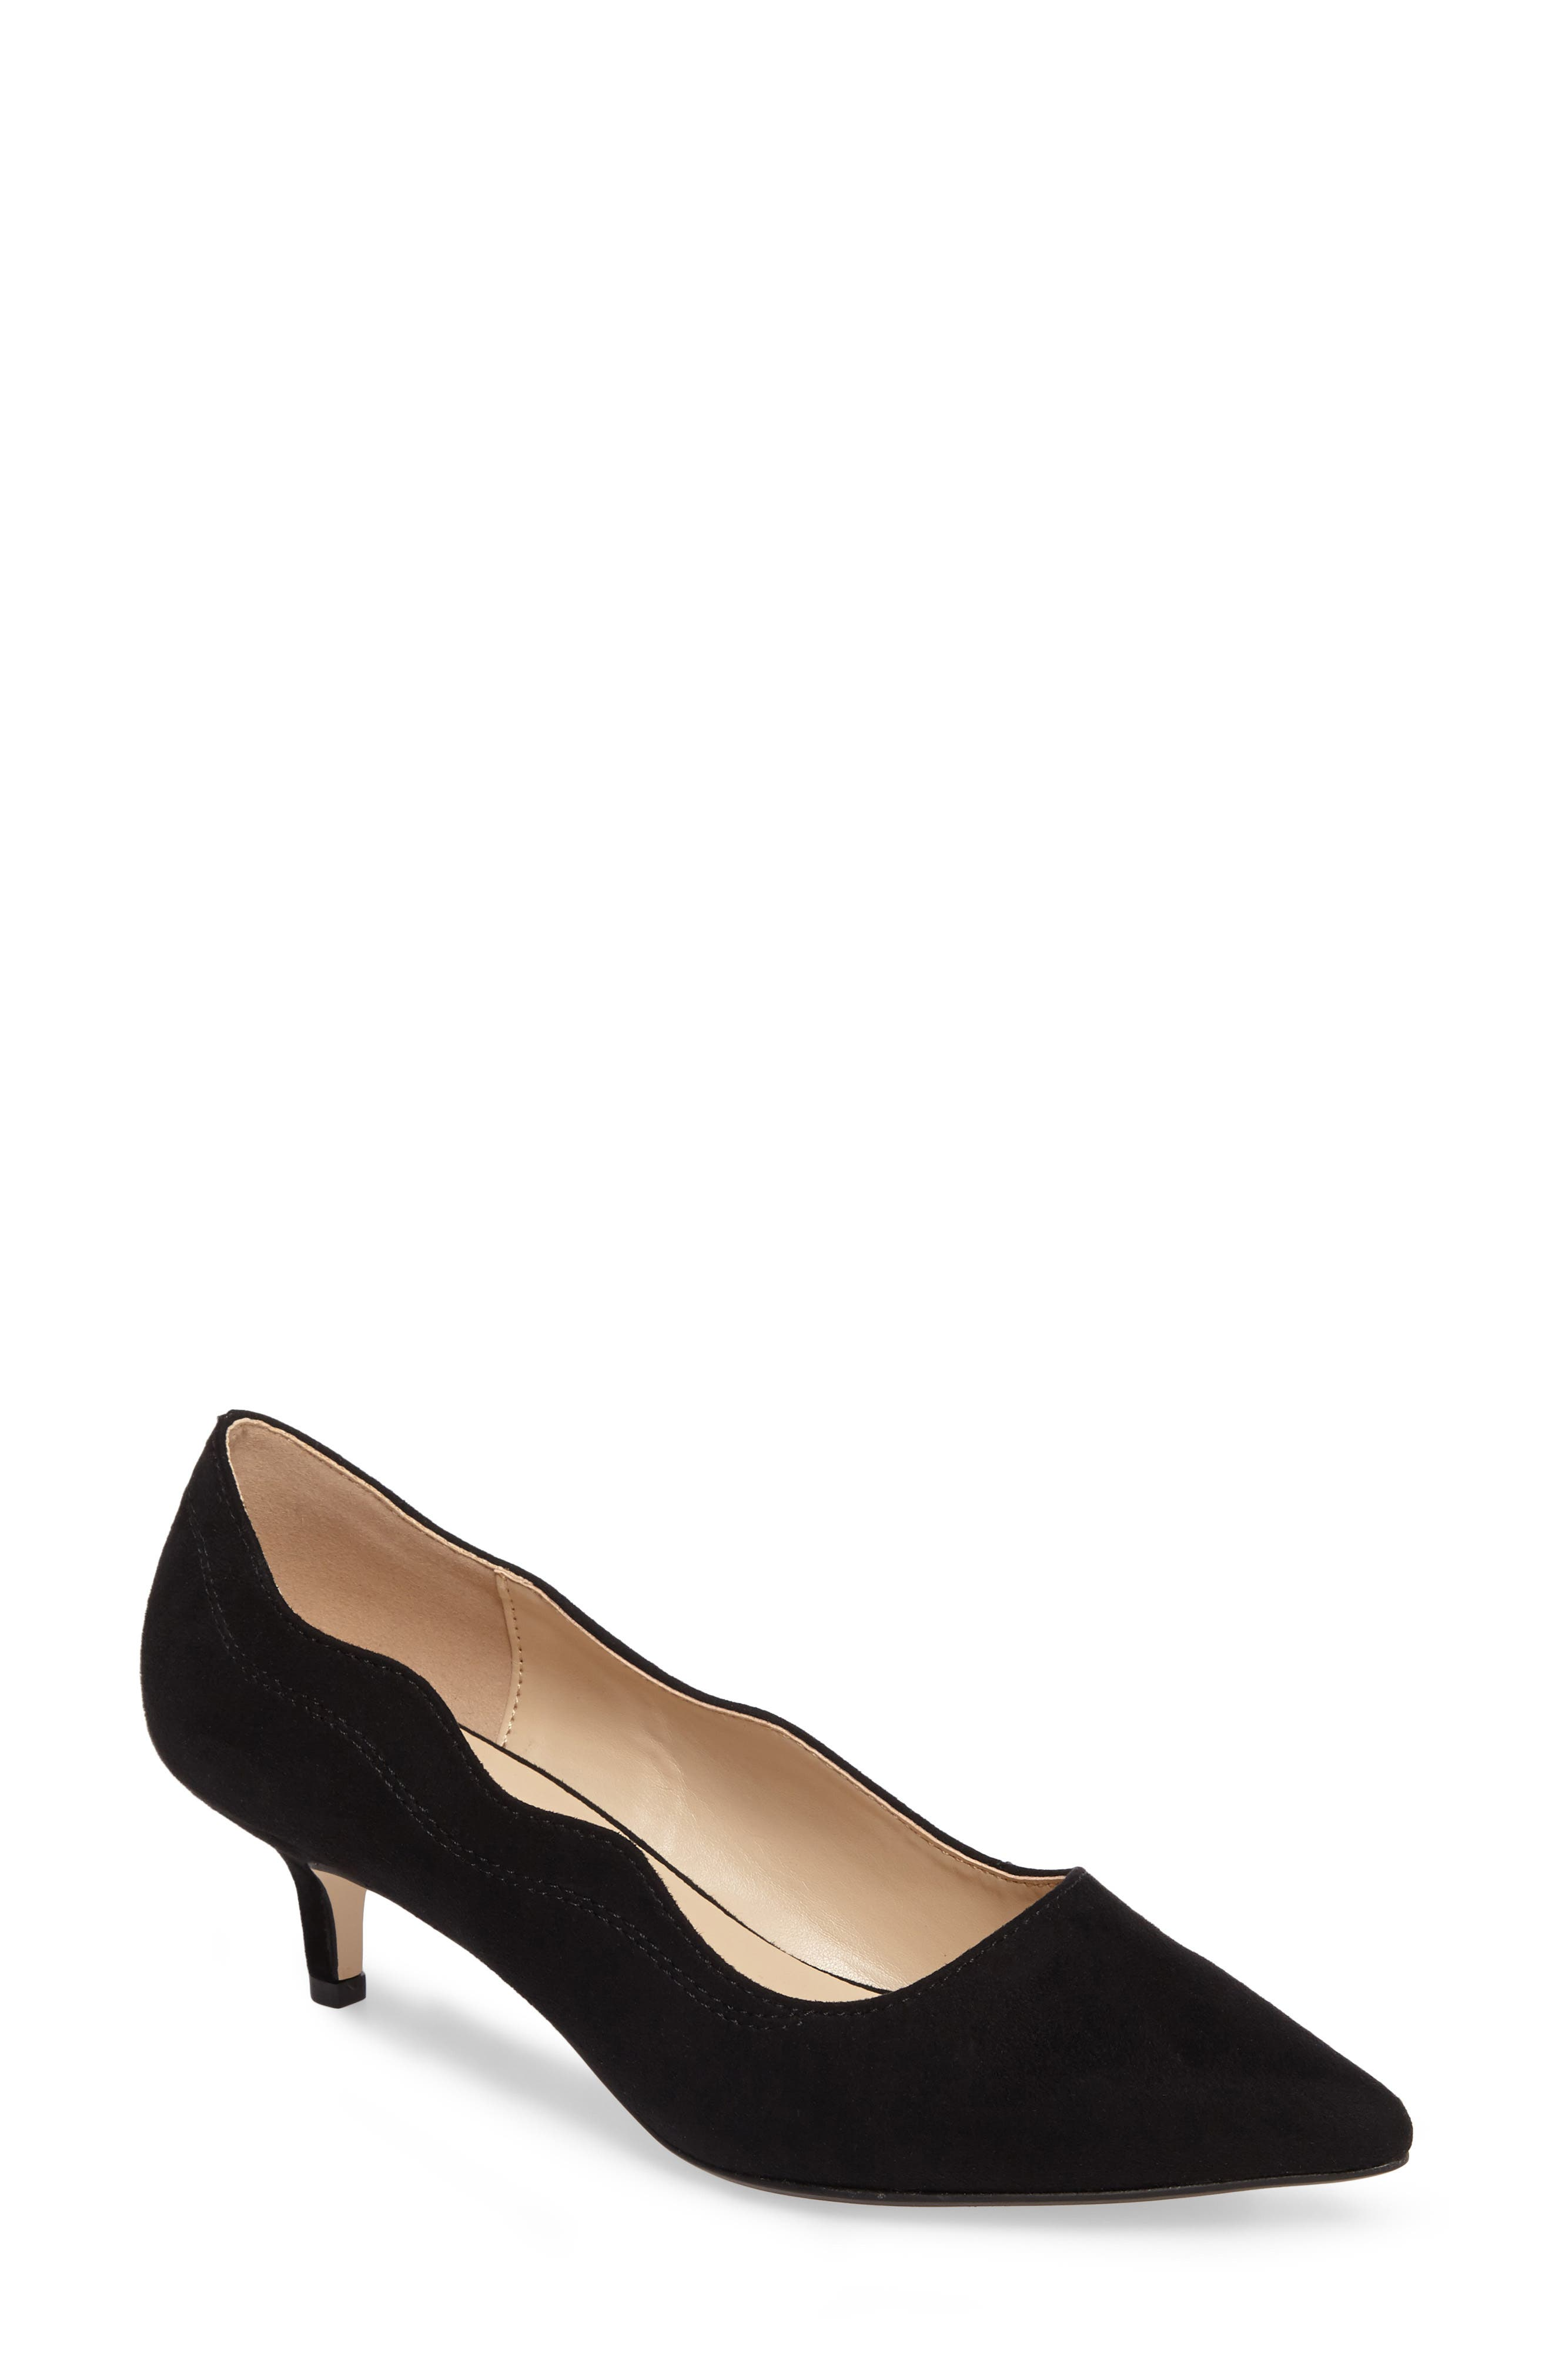 Stormm Pointy Toe Pump,                         Main,                         color, 003